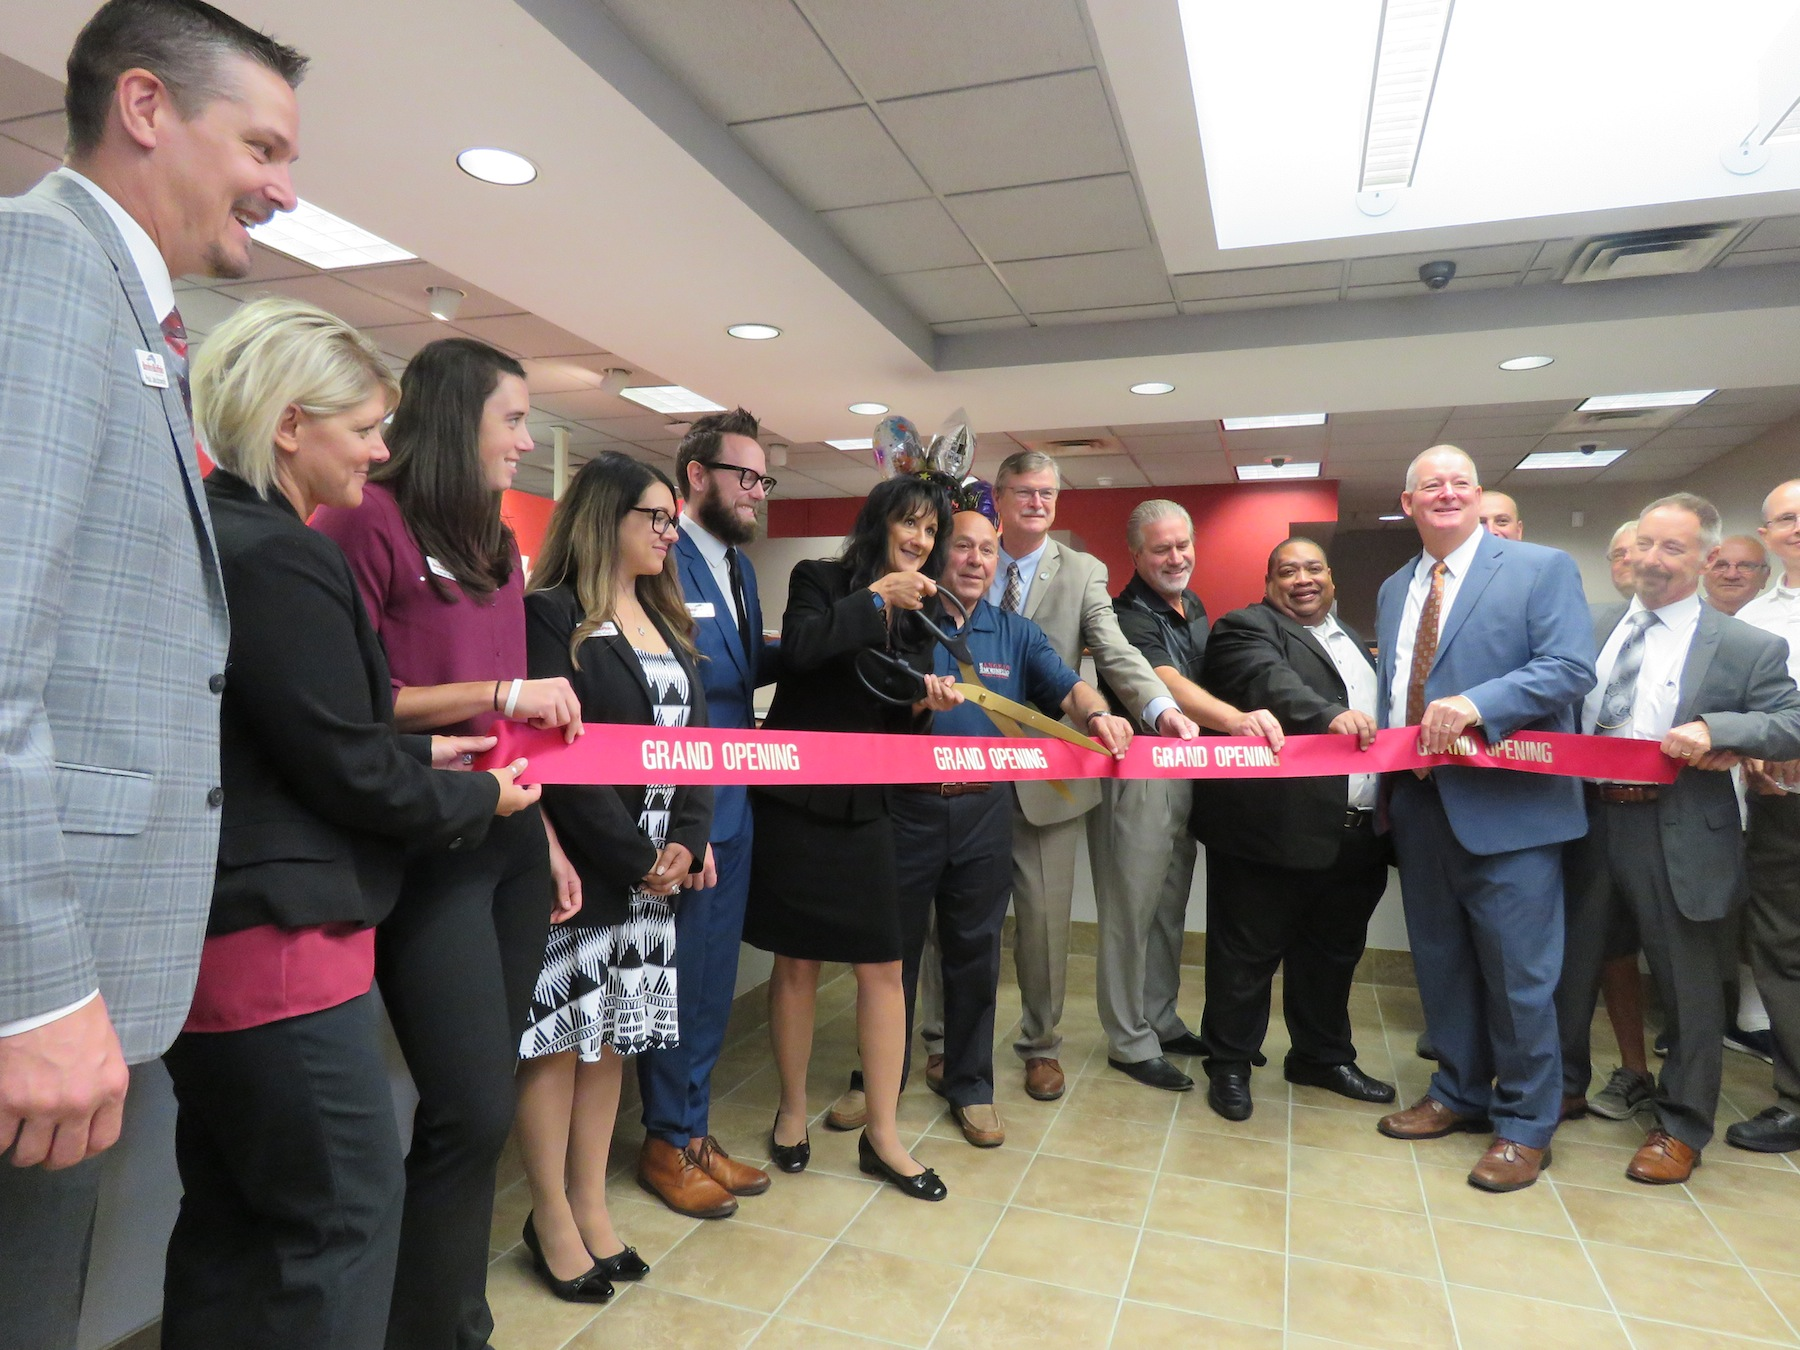 Local elected officials, BankOnBuffalo representatives and many more formally cut the ribbon to the new bank site in Wheatfield, 6947 Williams Road. (Photo by David Yarger)